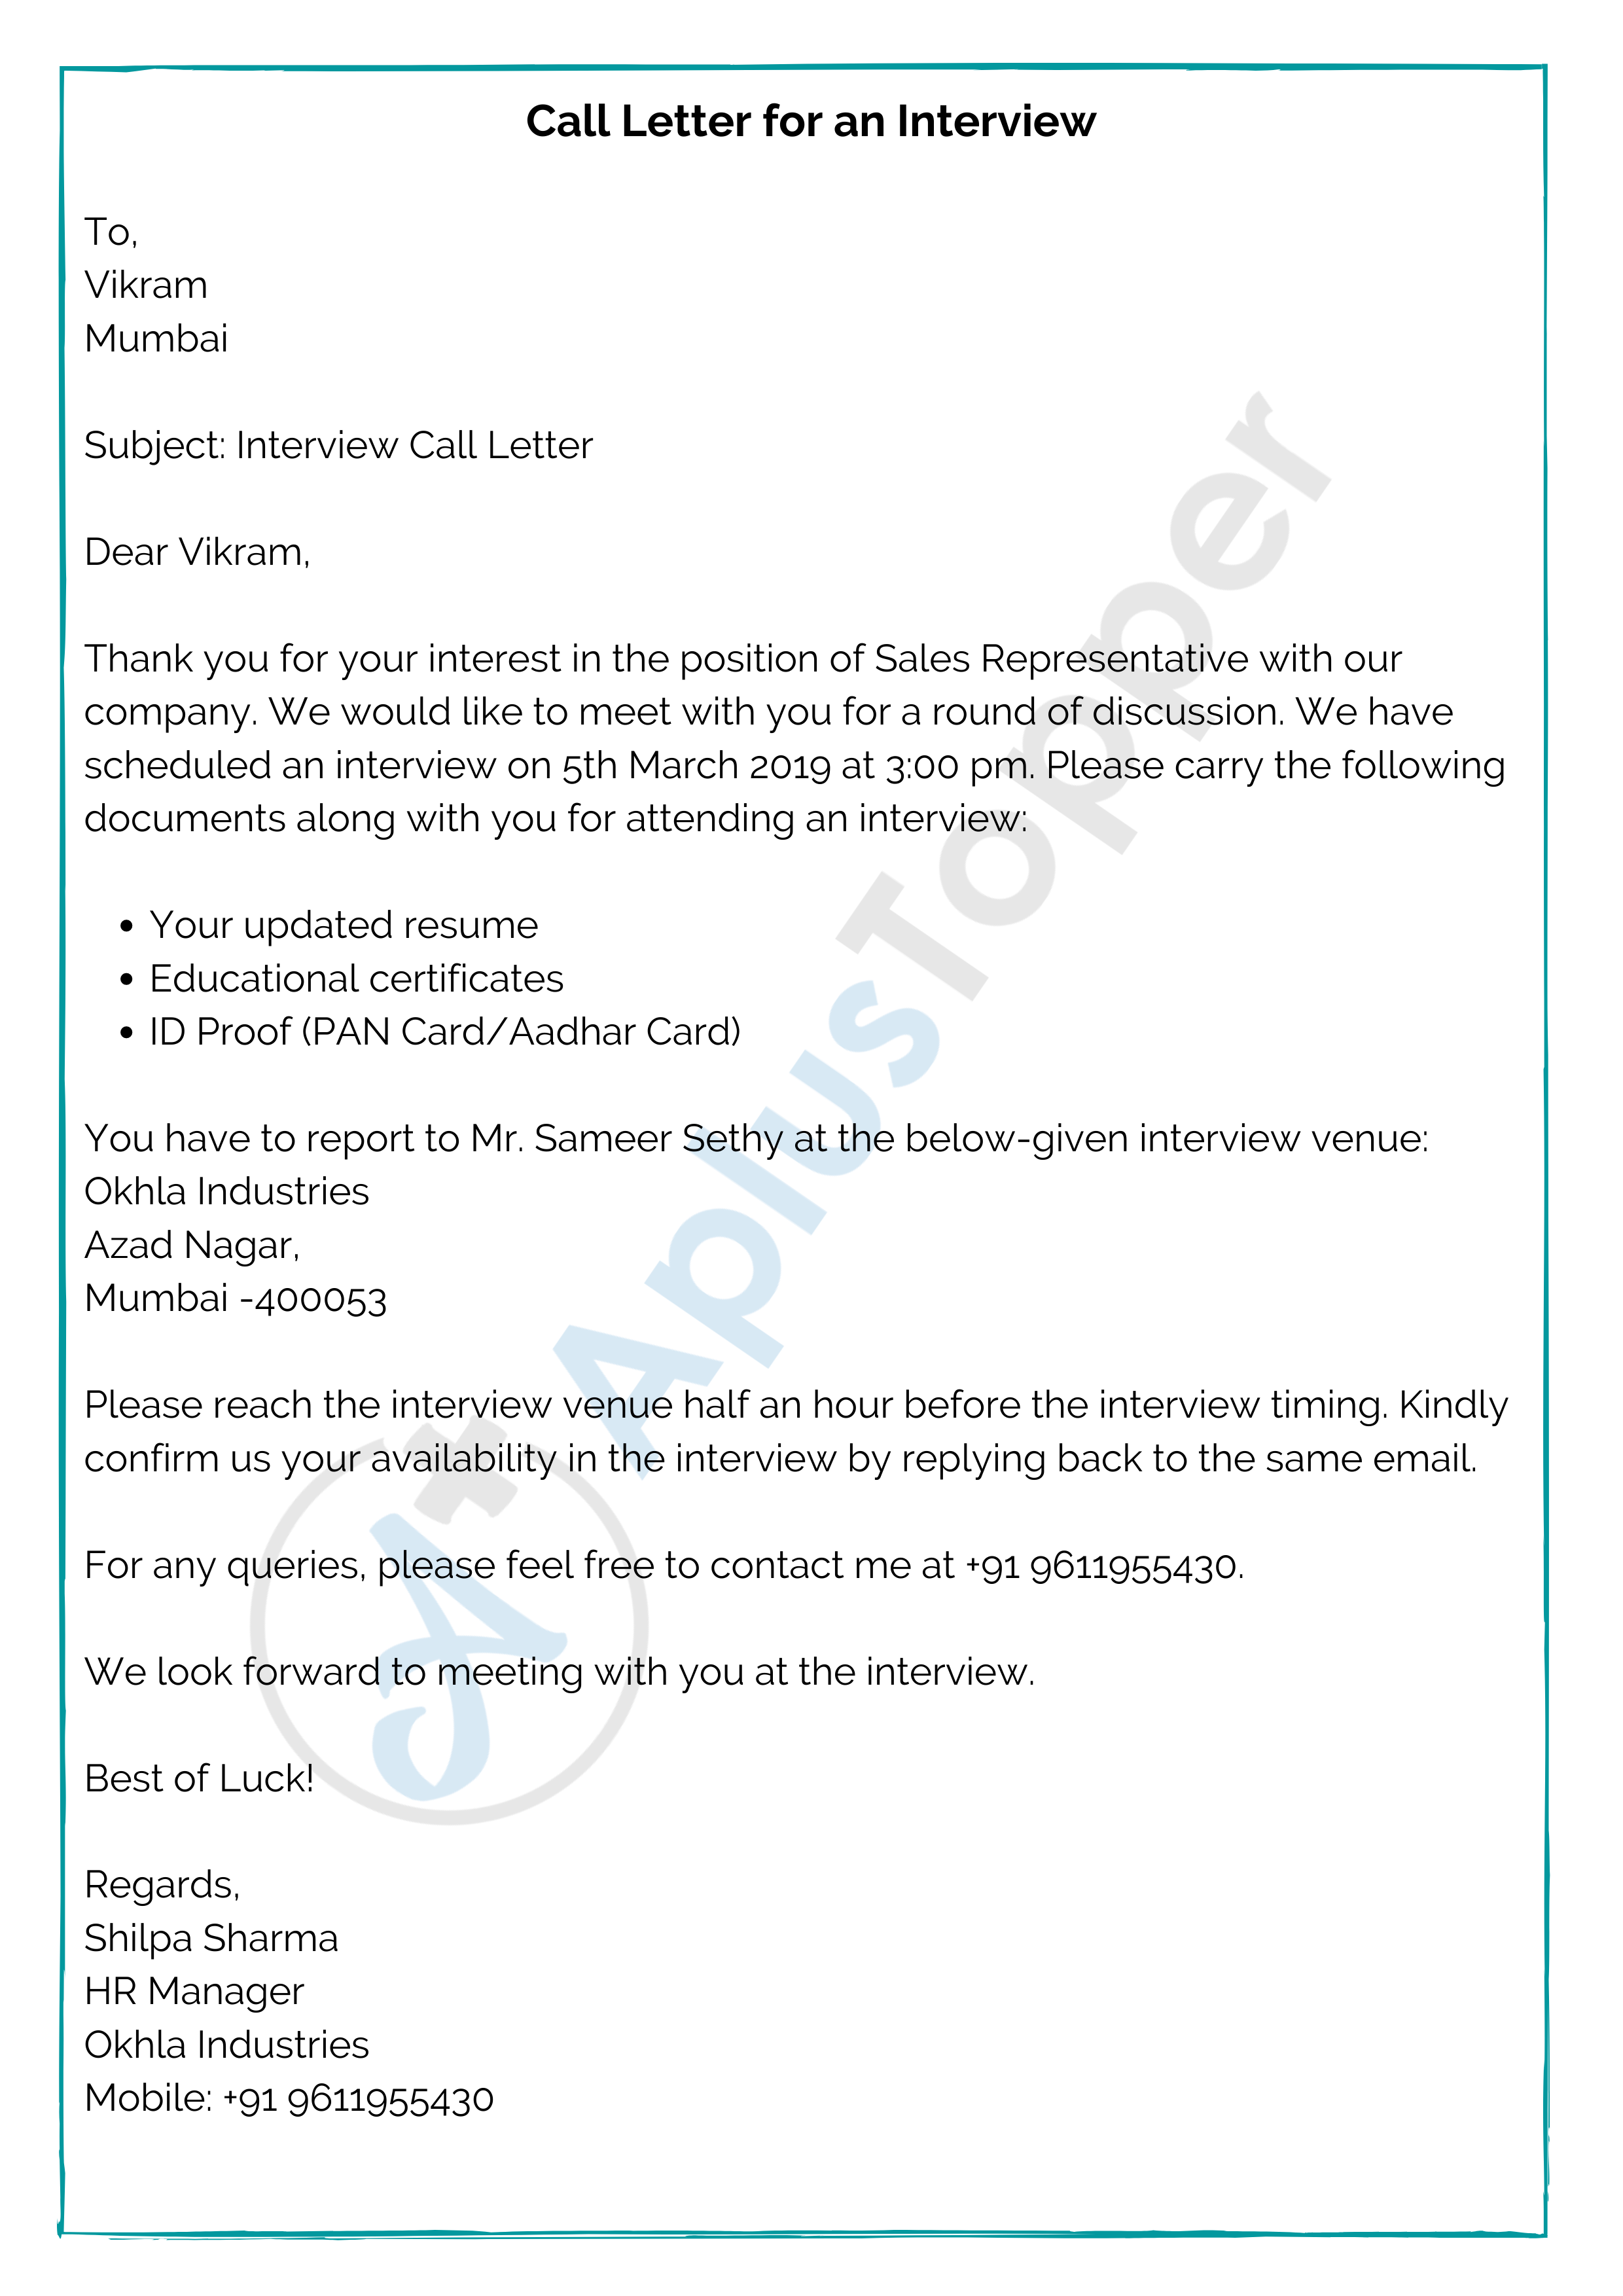 Call Letter for an Interview